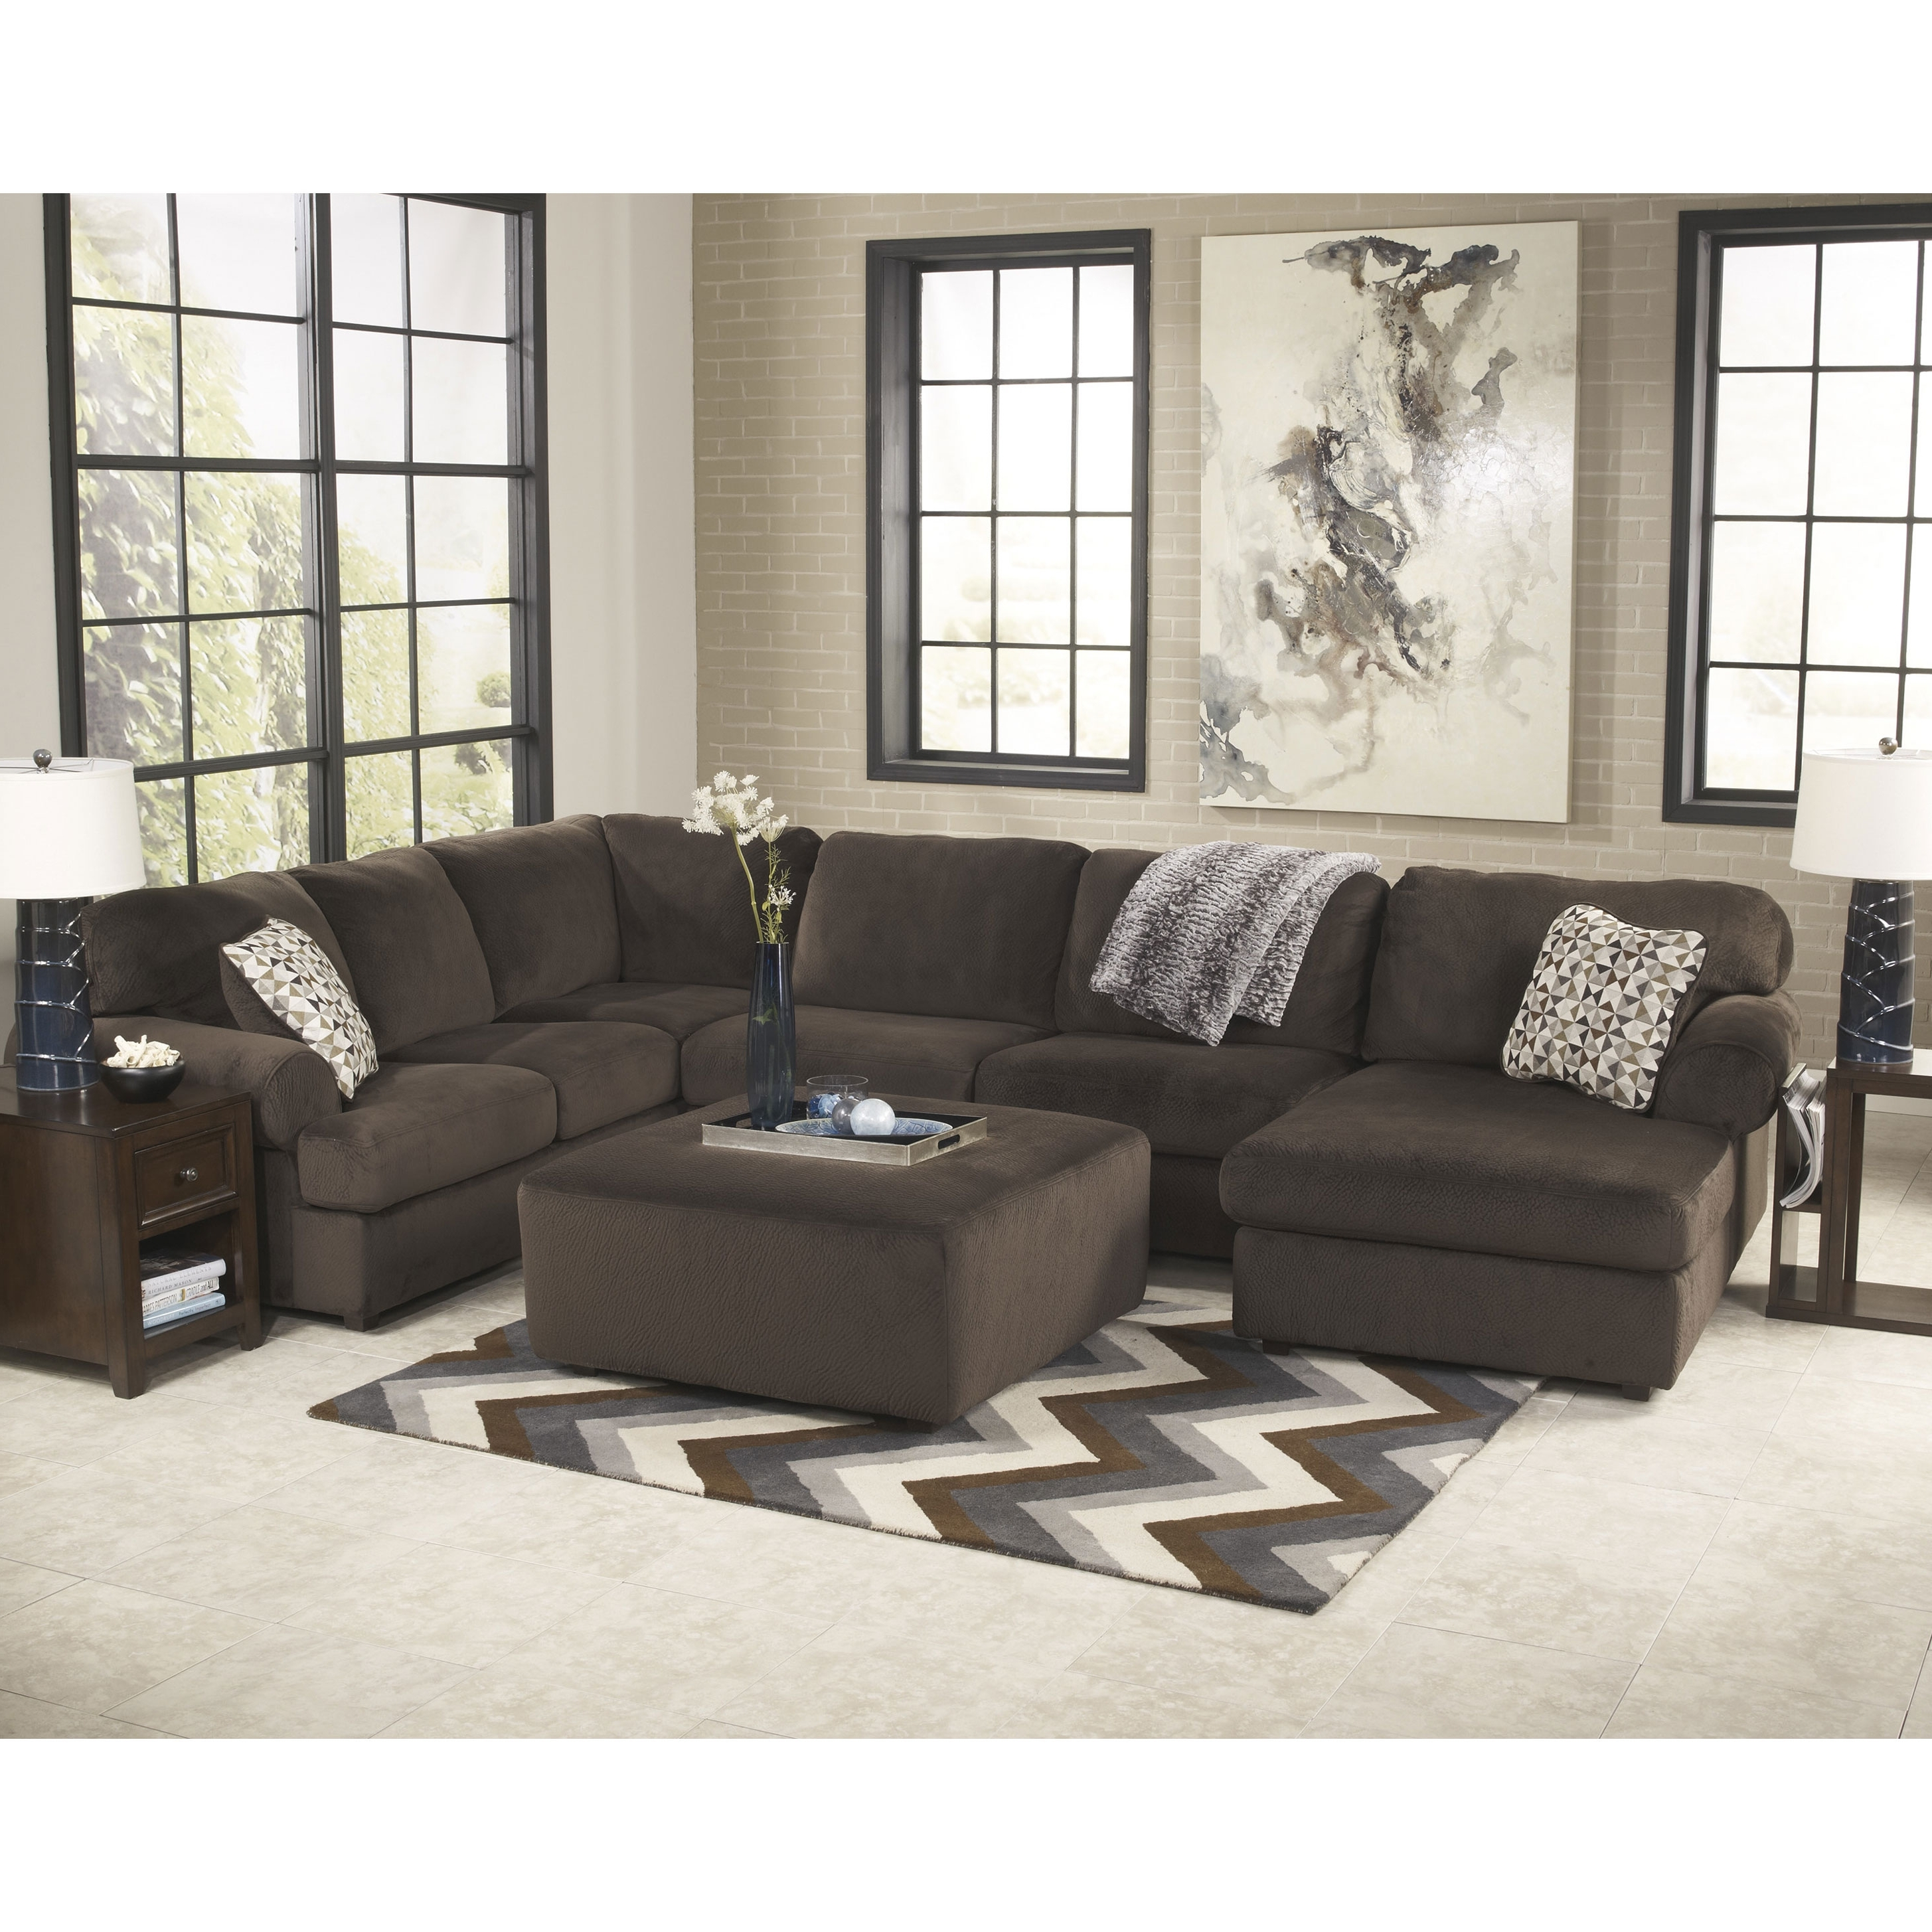 Kijiji London Sectional Sofas Pertaining To 2018 Sectional Sofa: Top Recommended Faux Suede Sectional Sofa Gallery (Gallery 8 of 20)